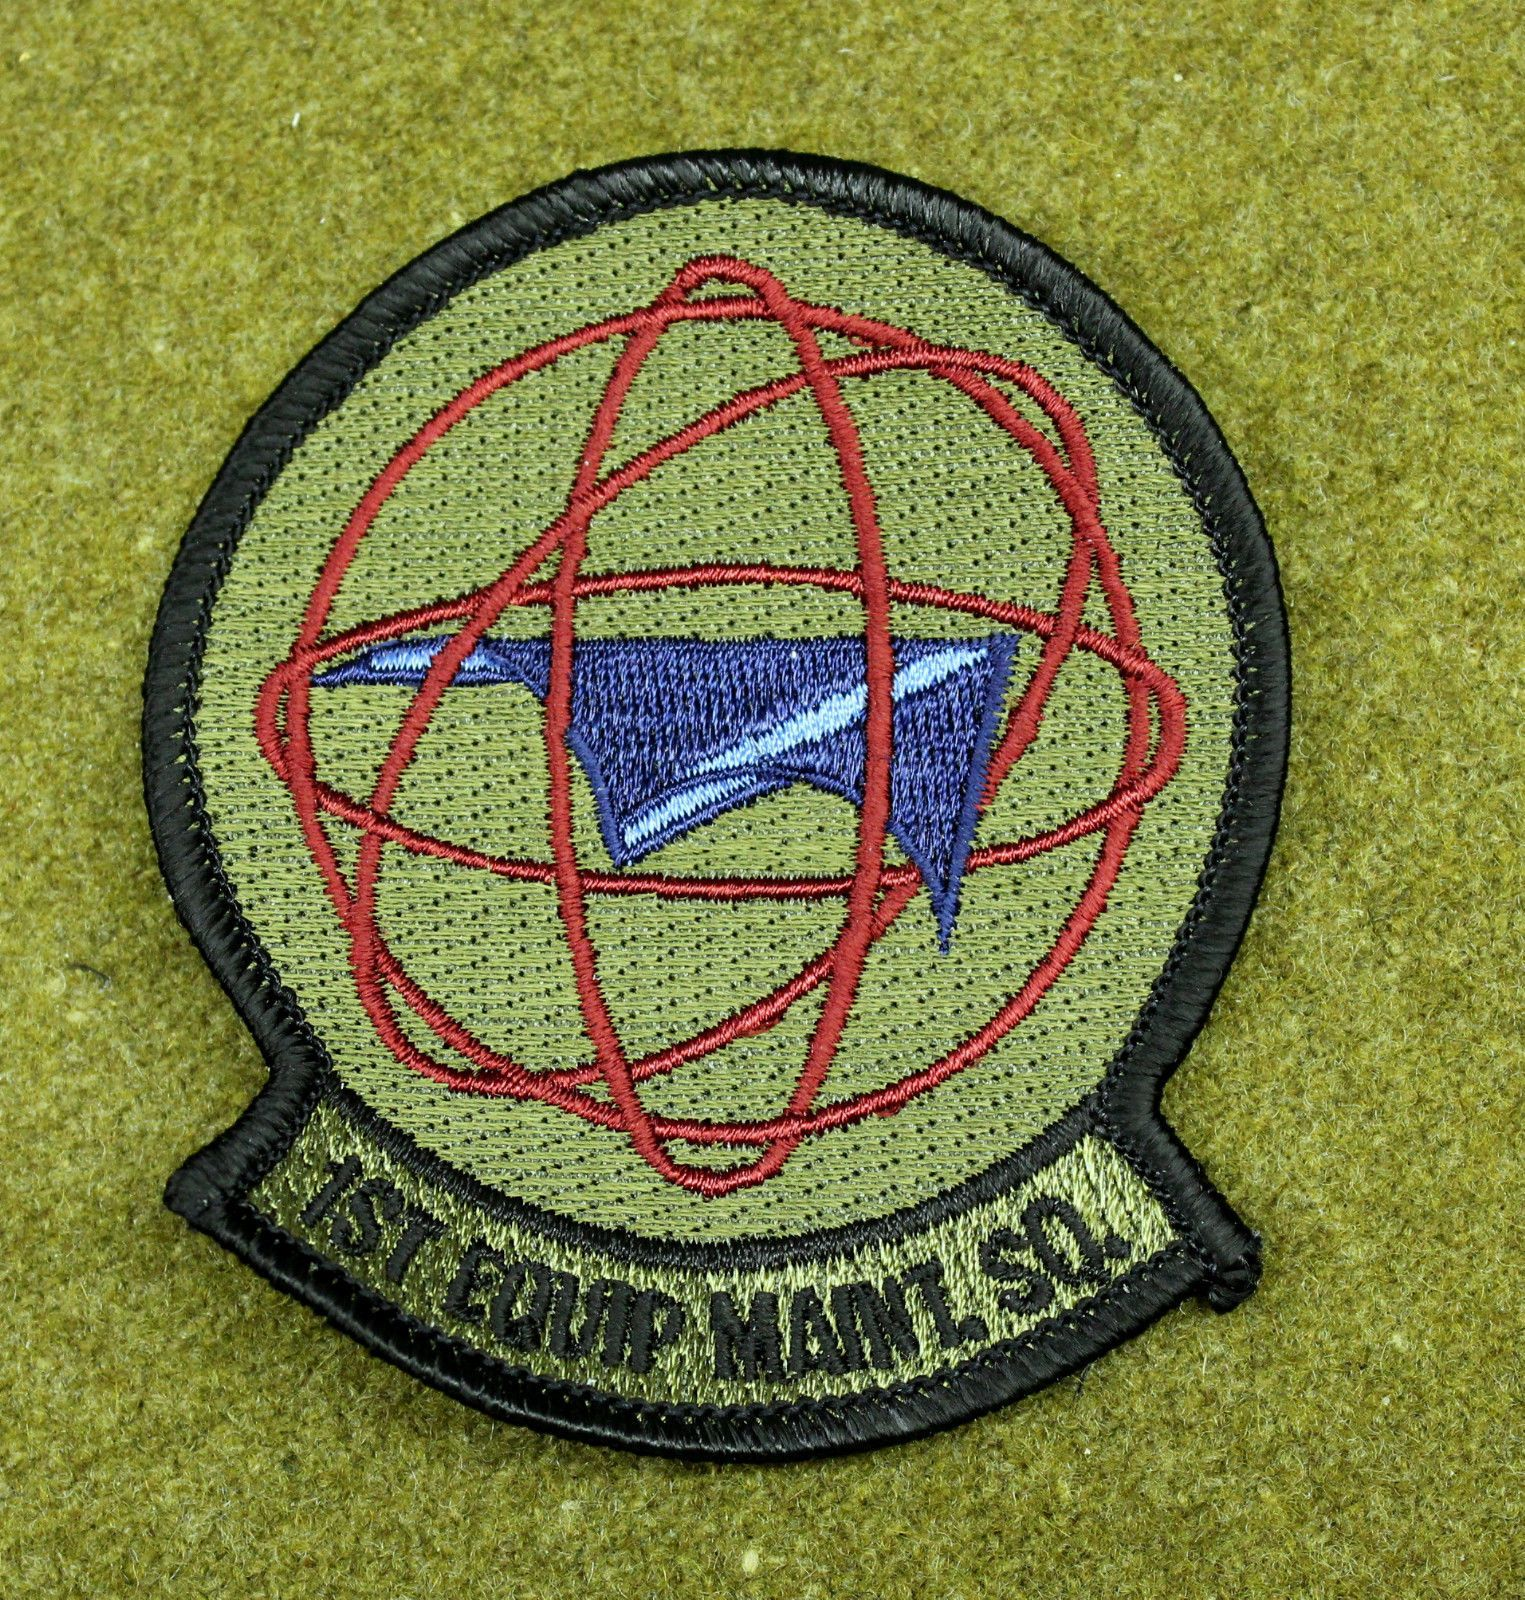 27383) Patch USAF 1st Equipment Maintenance Squadron Air